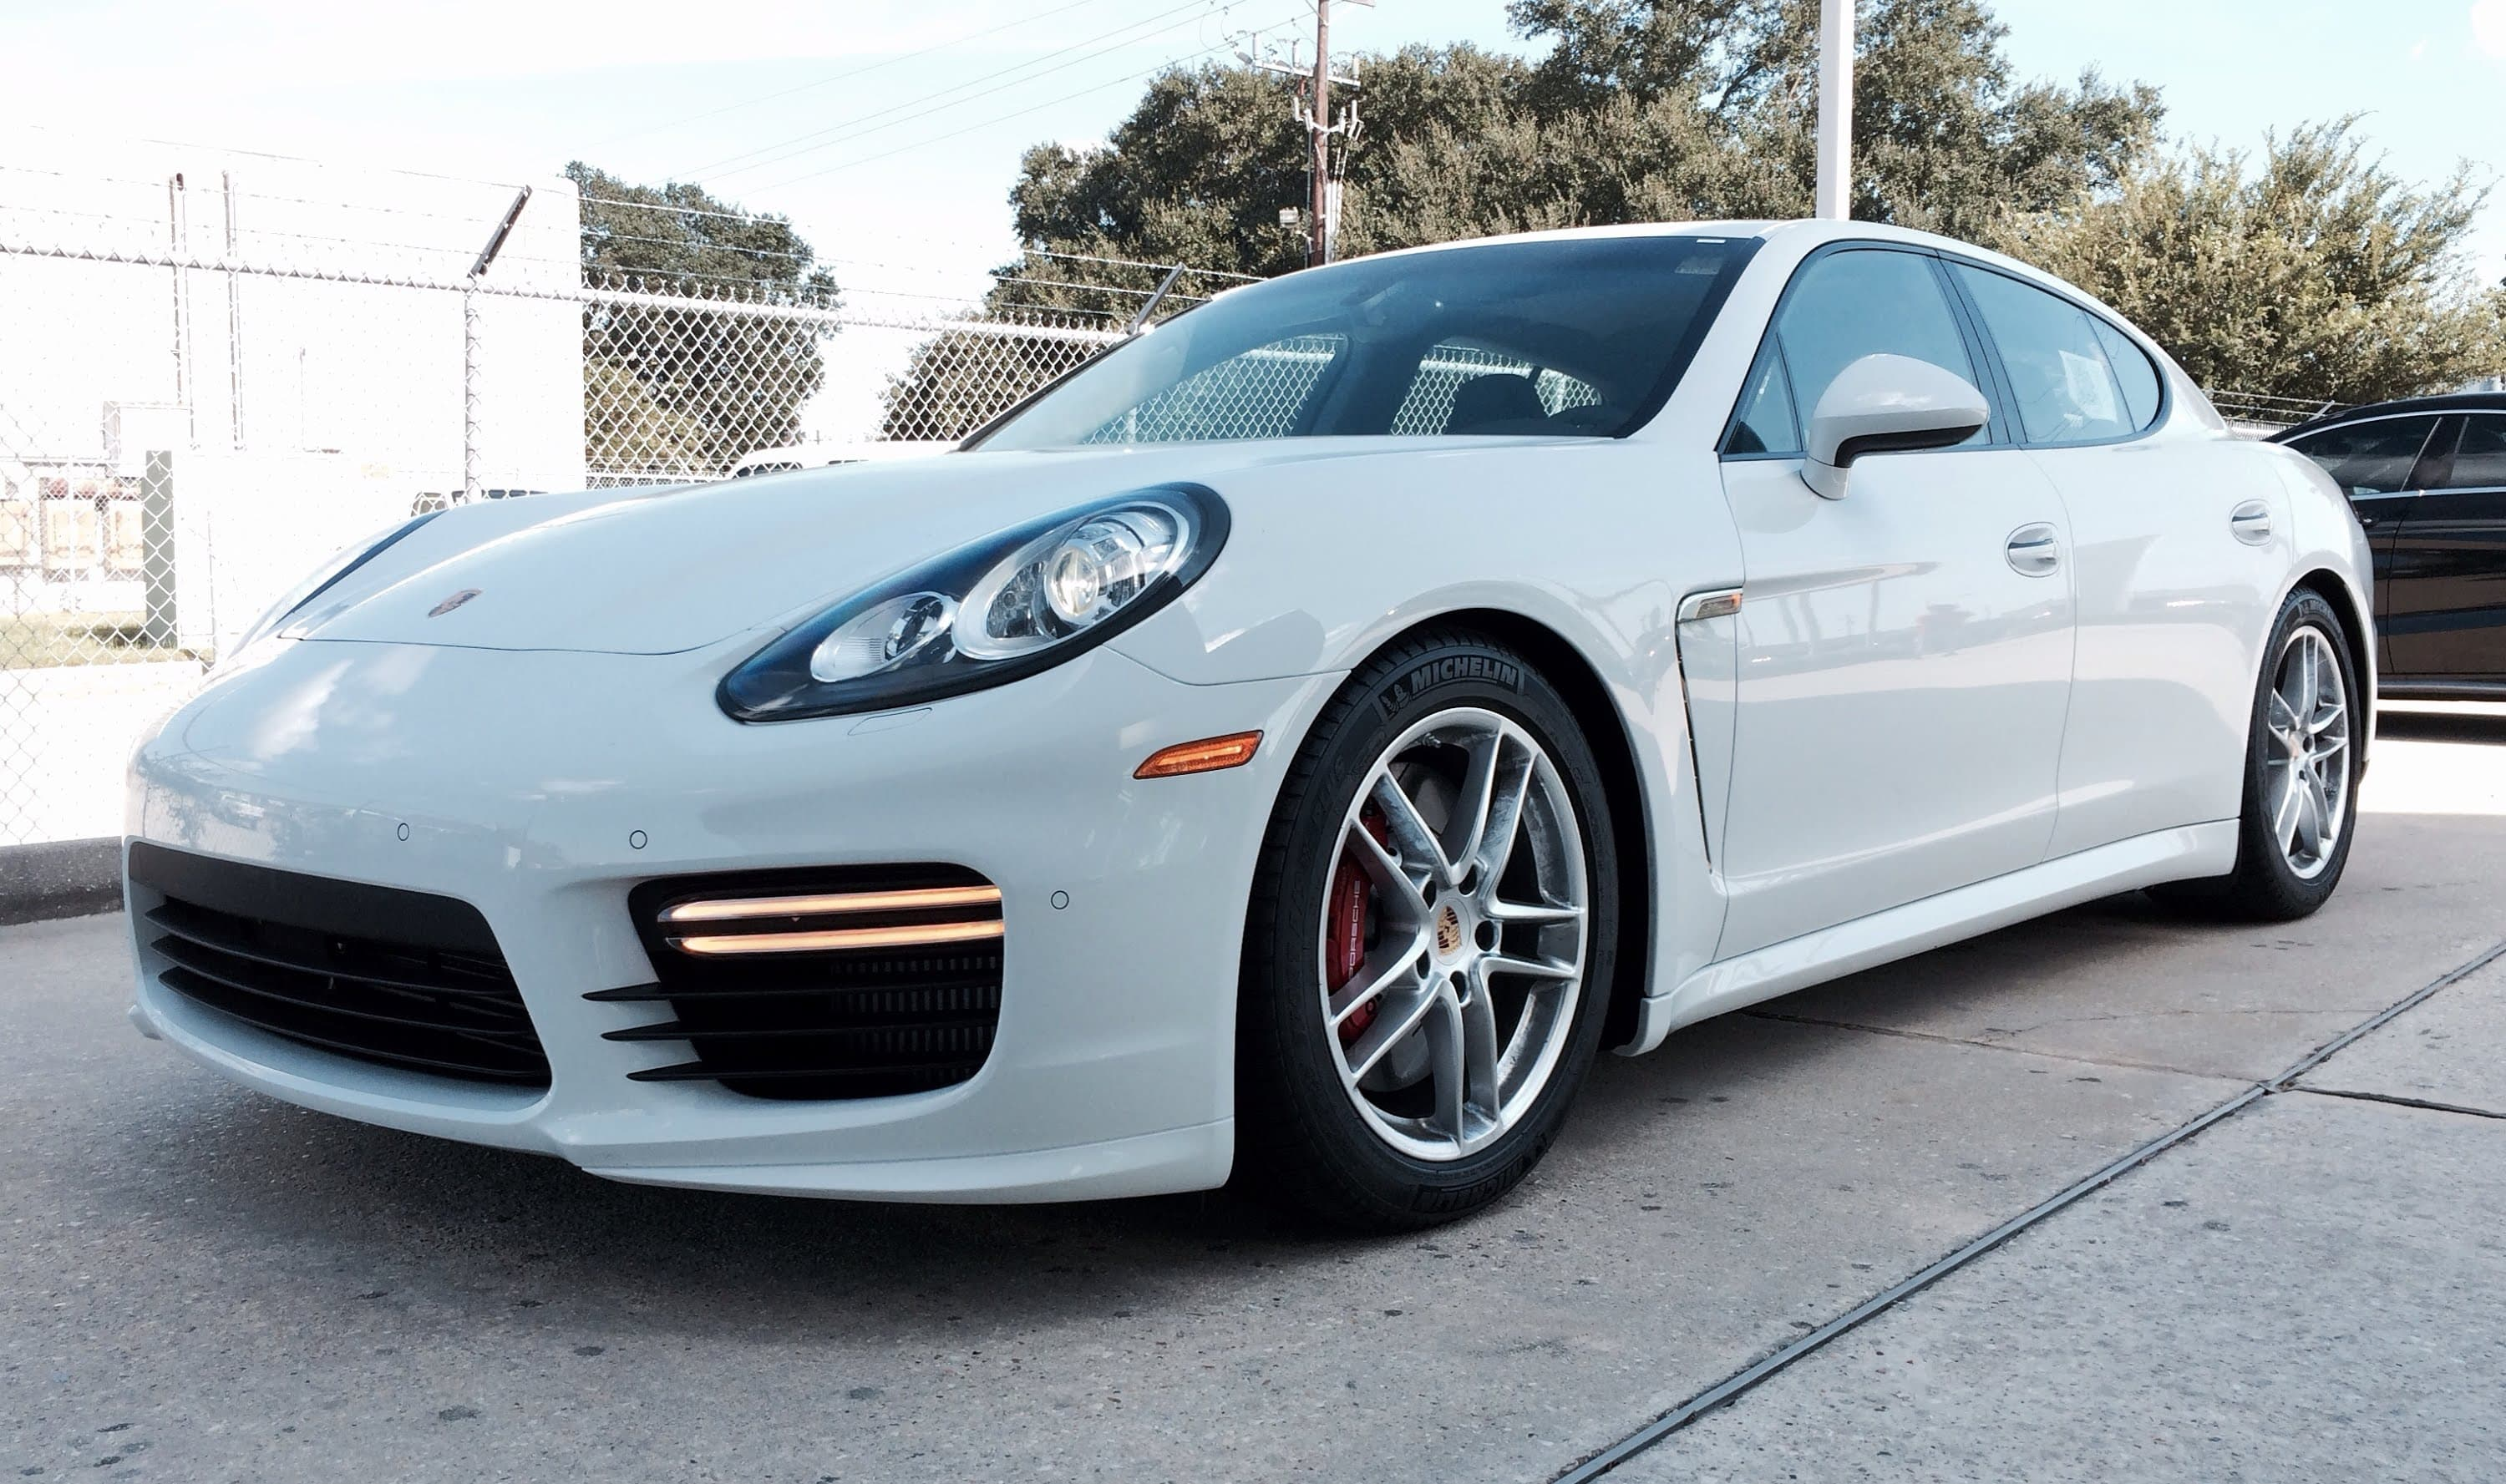 White Panamera Turbo S Porsche 2017